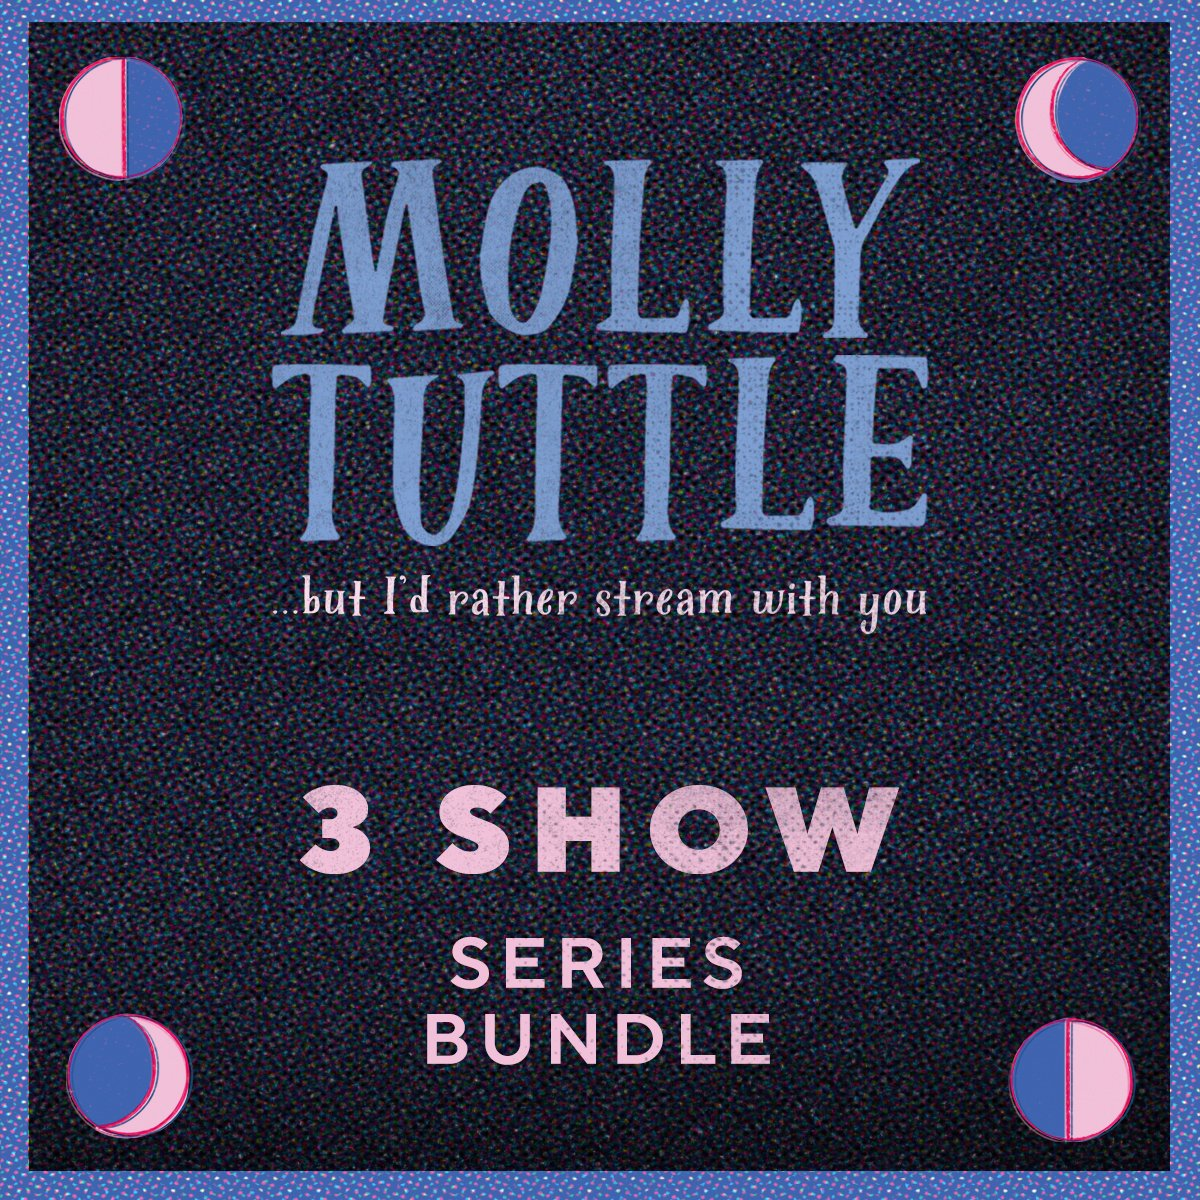 TONIGHT! @MollyTuttle kicks off her live stream series ...but i'd rather stream with you: Live From The Basement Dont miss out, grab your tickets now! bit.ly/2HNEzlC